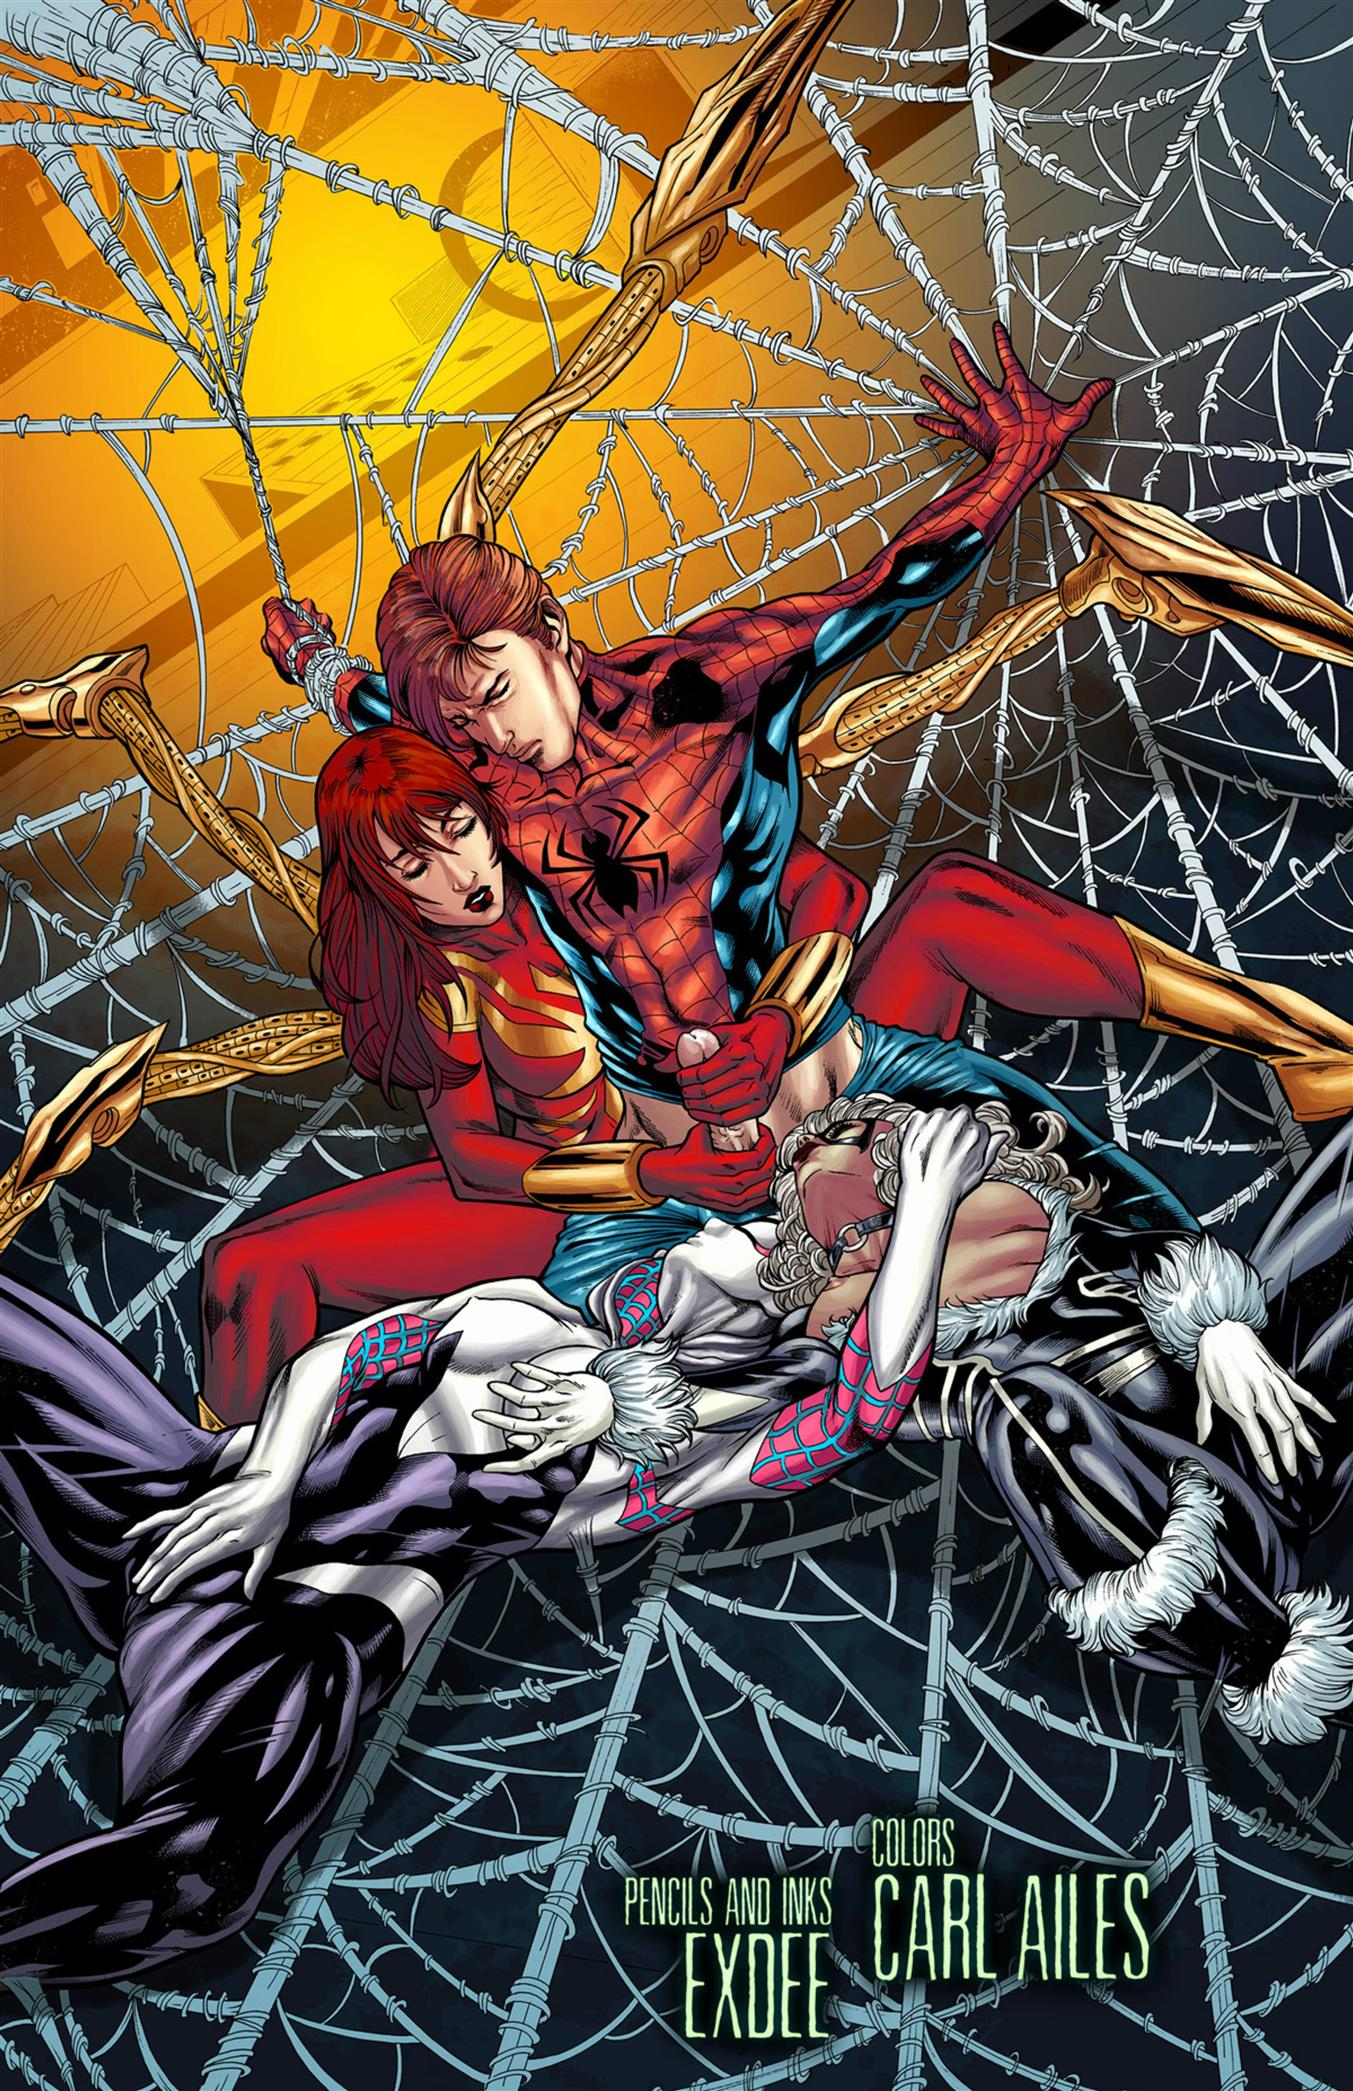 Trifecta (Spider-Man) [Tracy Scops]